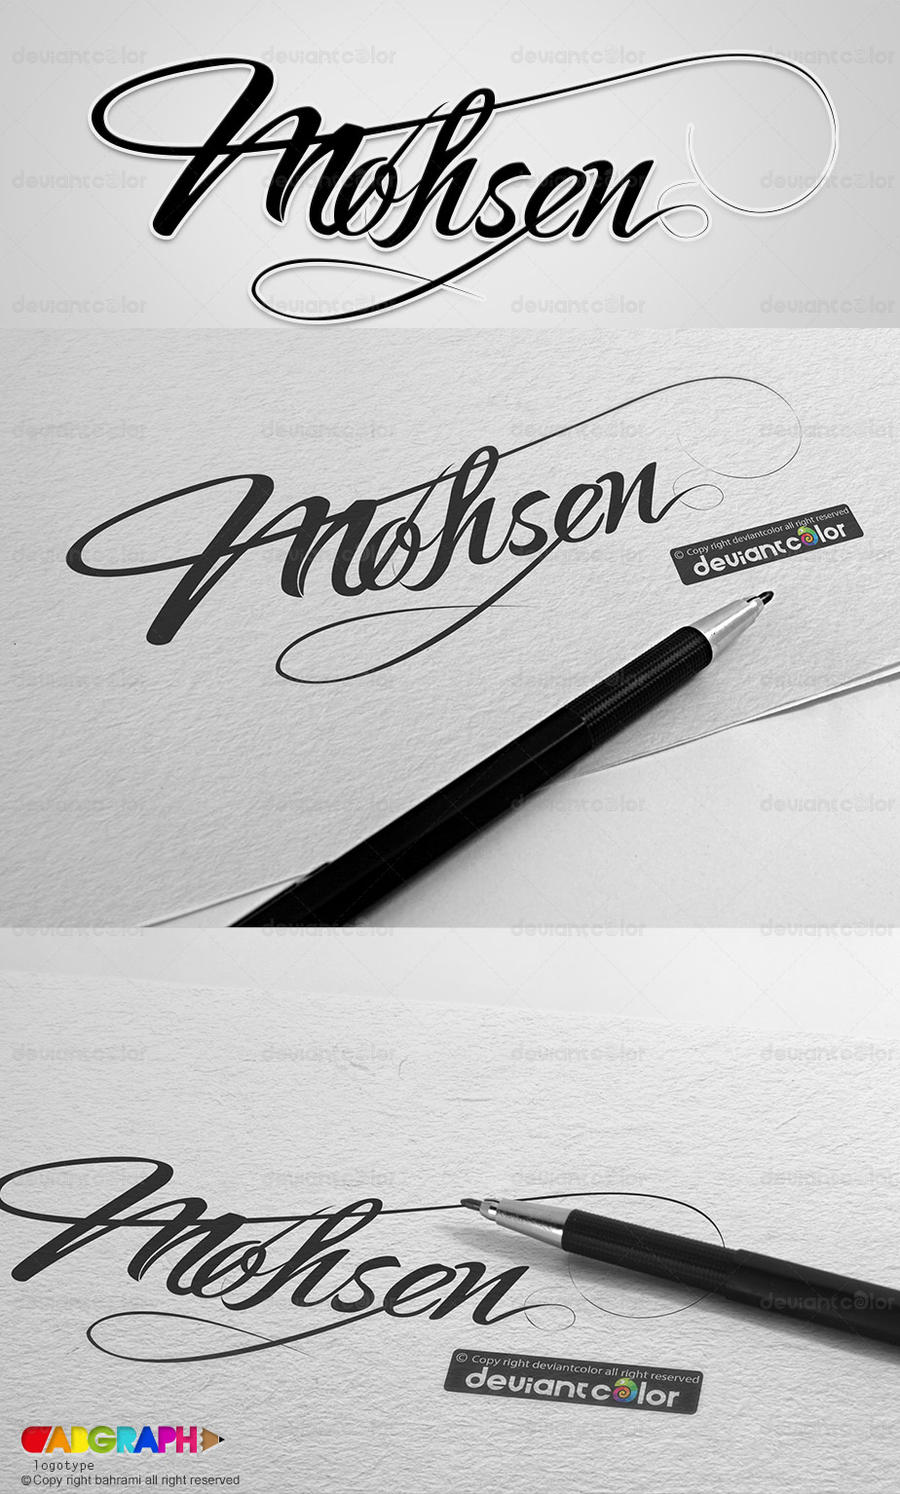 Mohsen logotype by abgraph